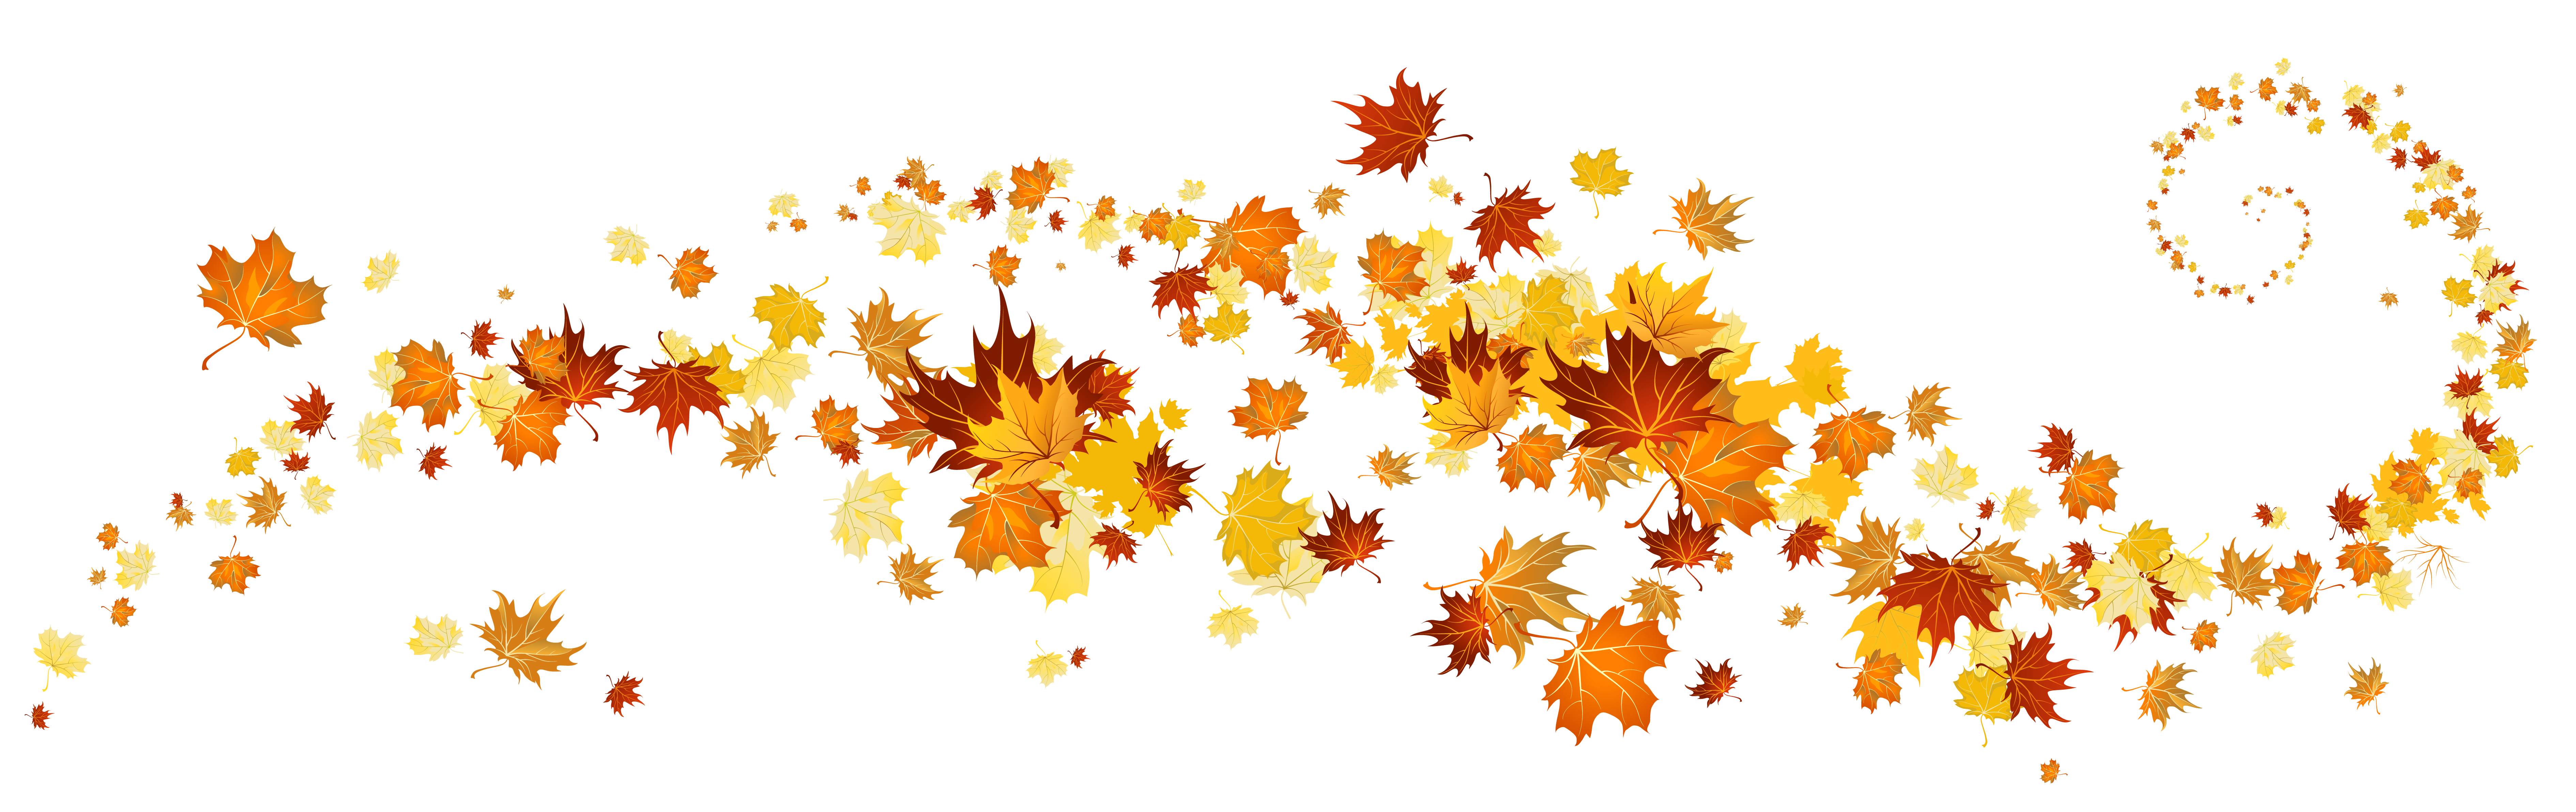 Autumn flowers clipart AUTUMN FLOWERS with fall color.